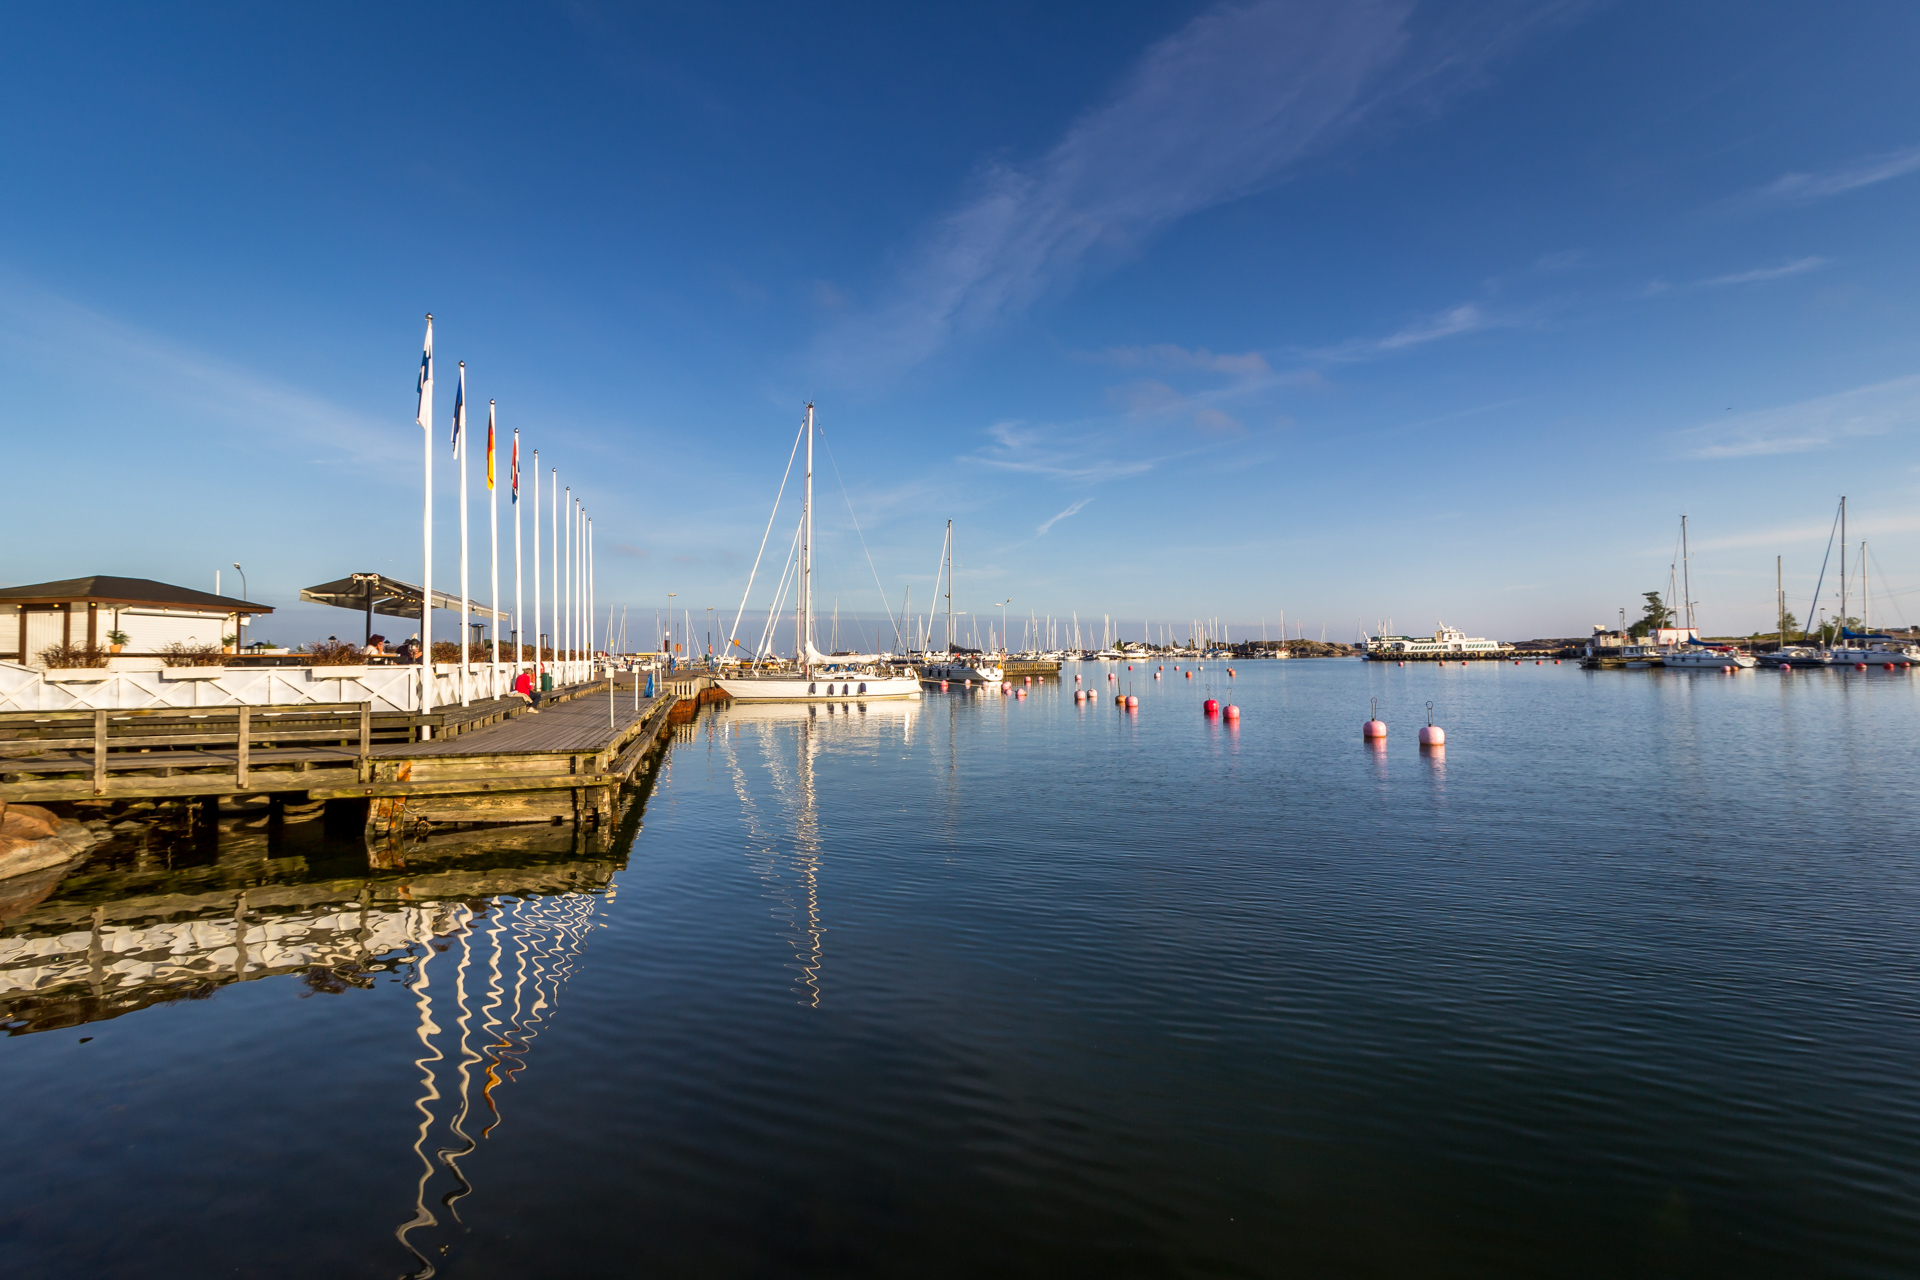 Eastern harbour and the yacht club (HSF) pier